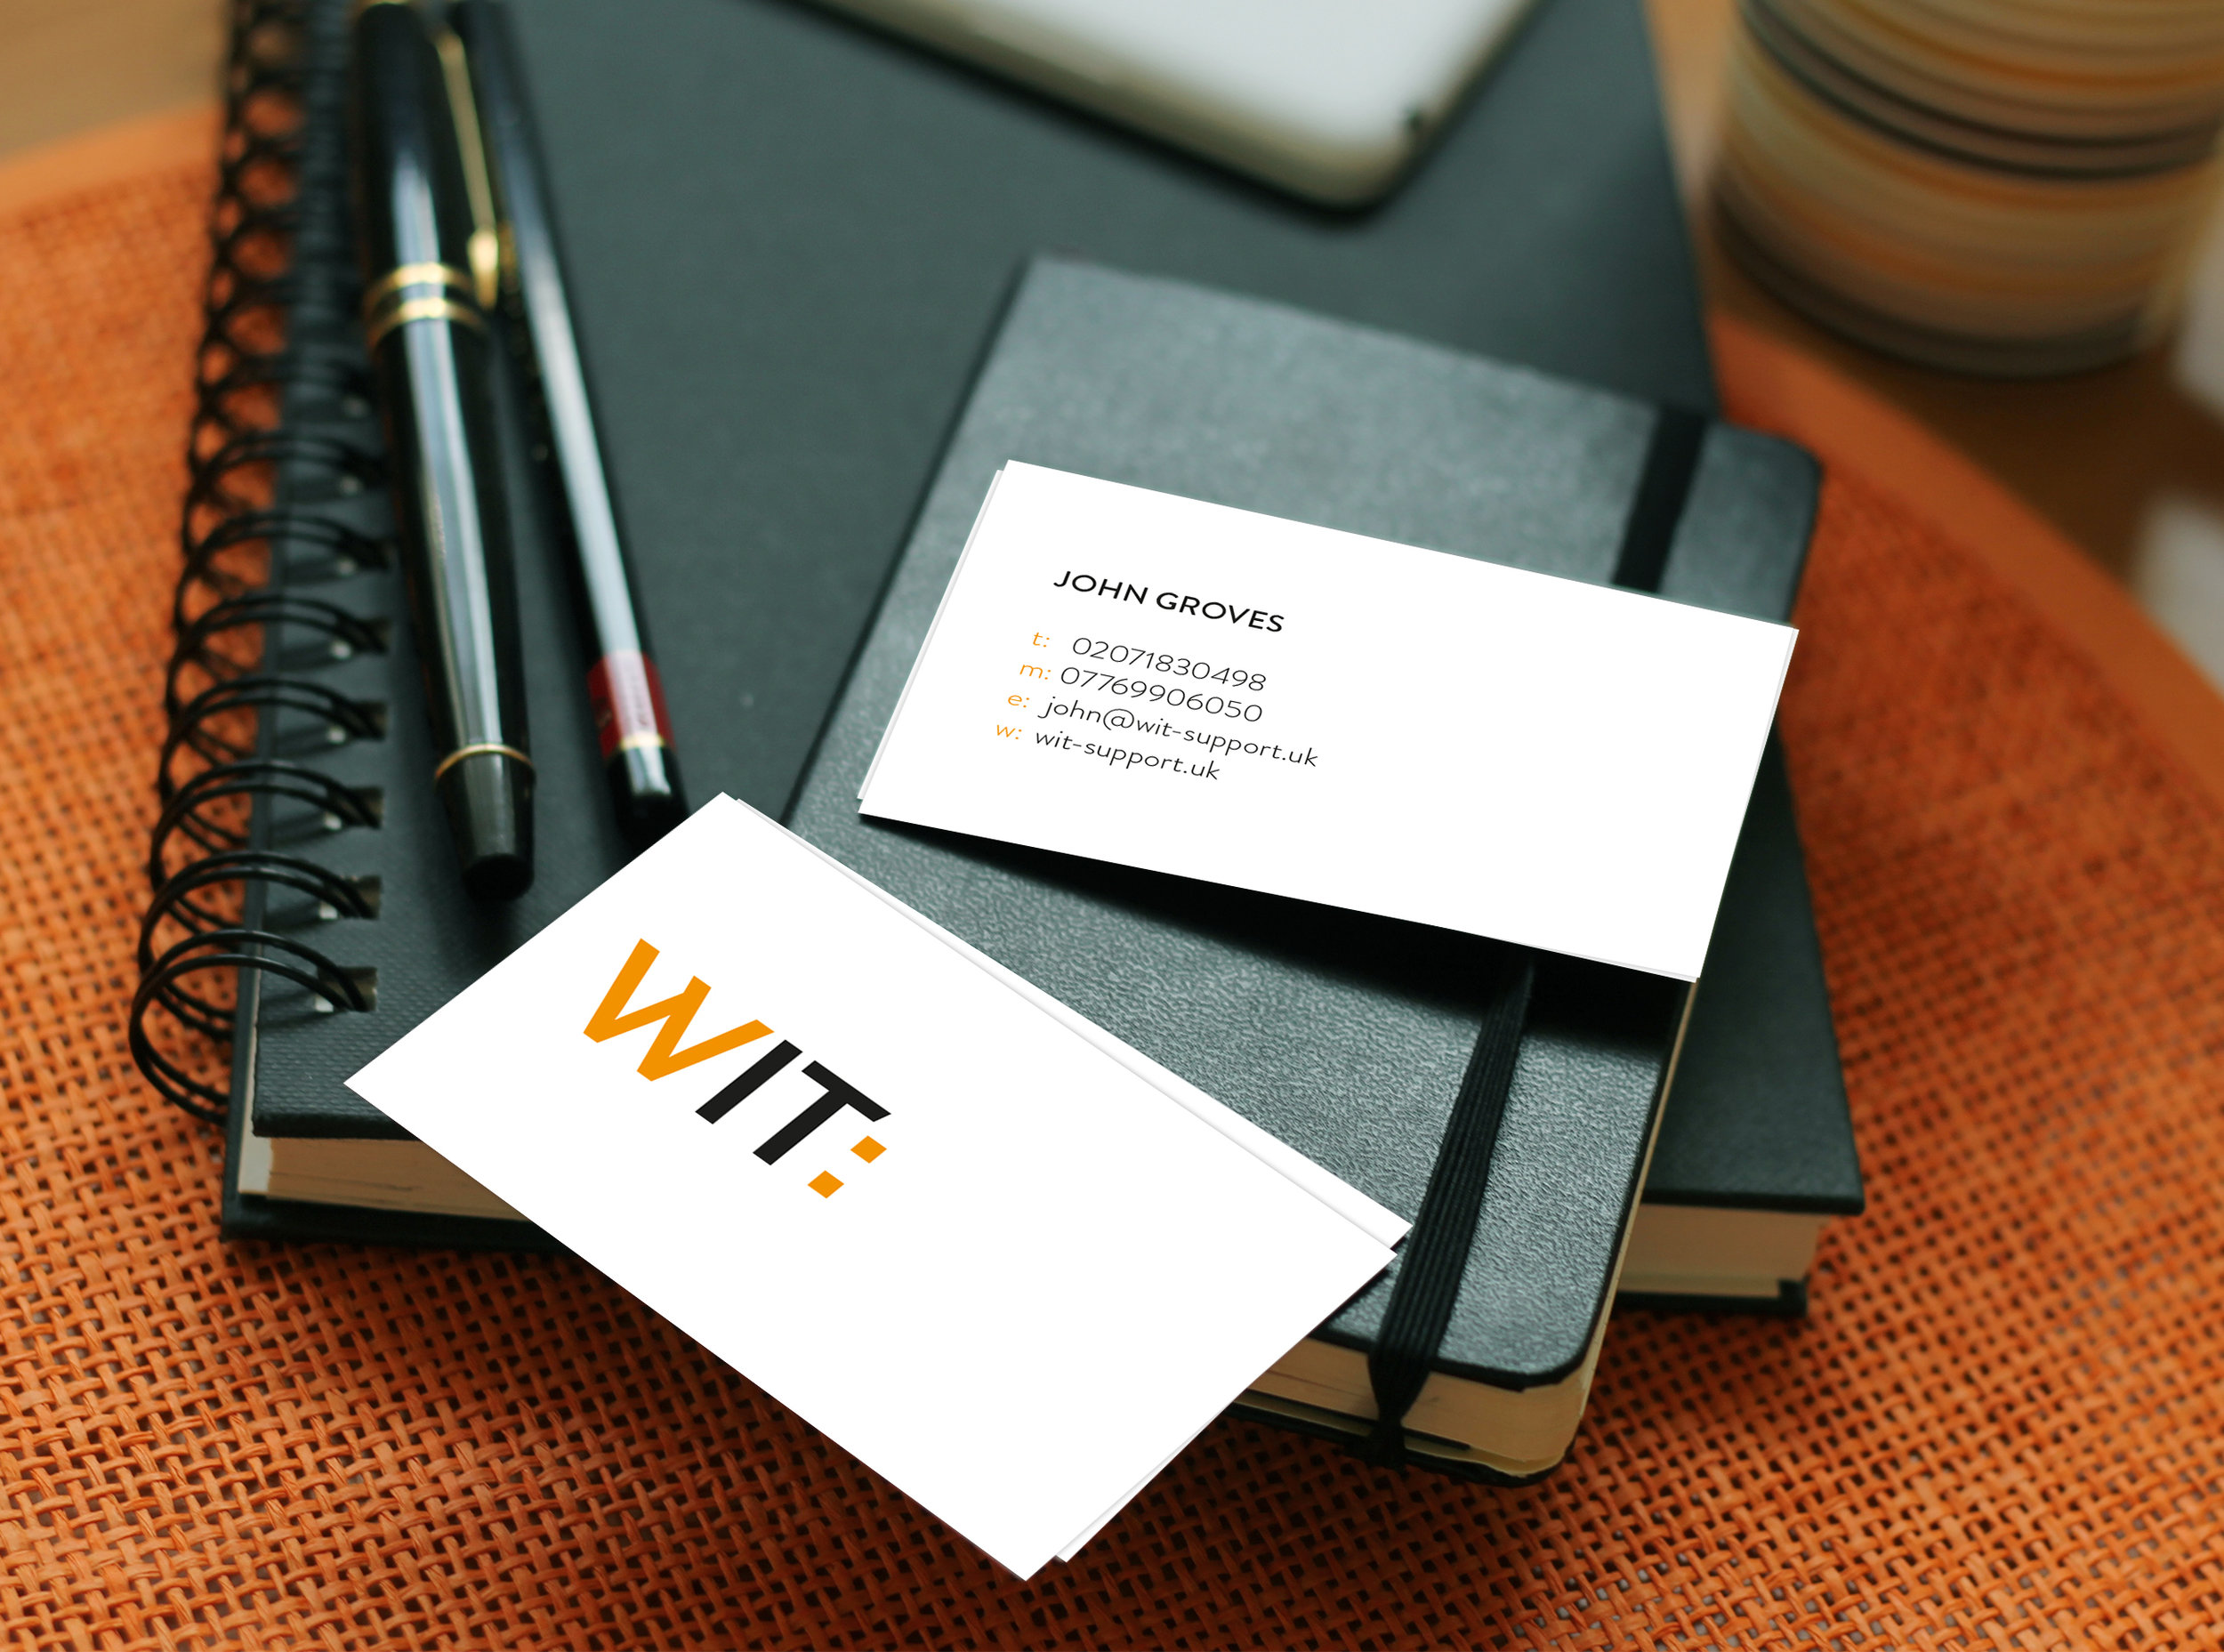 wit_bus card mock up.jpg